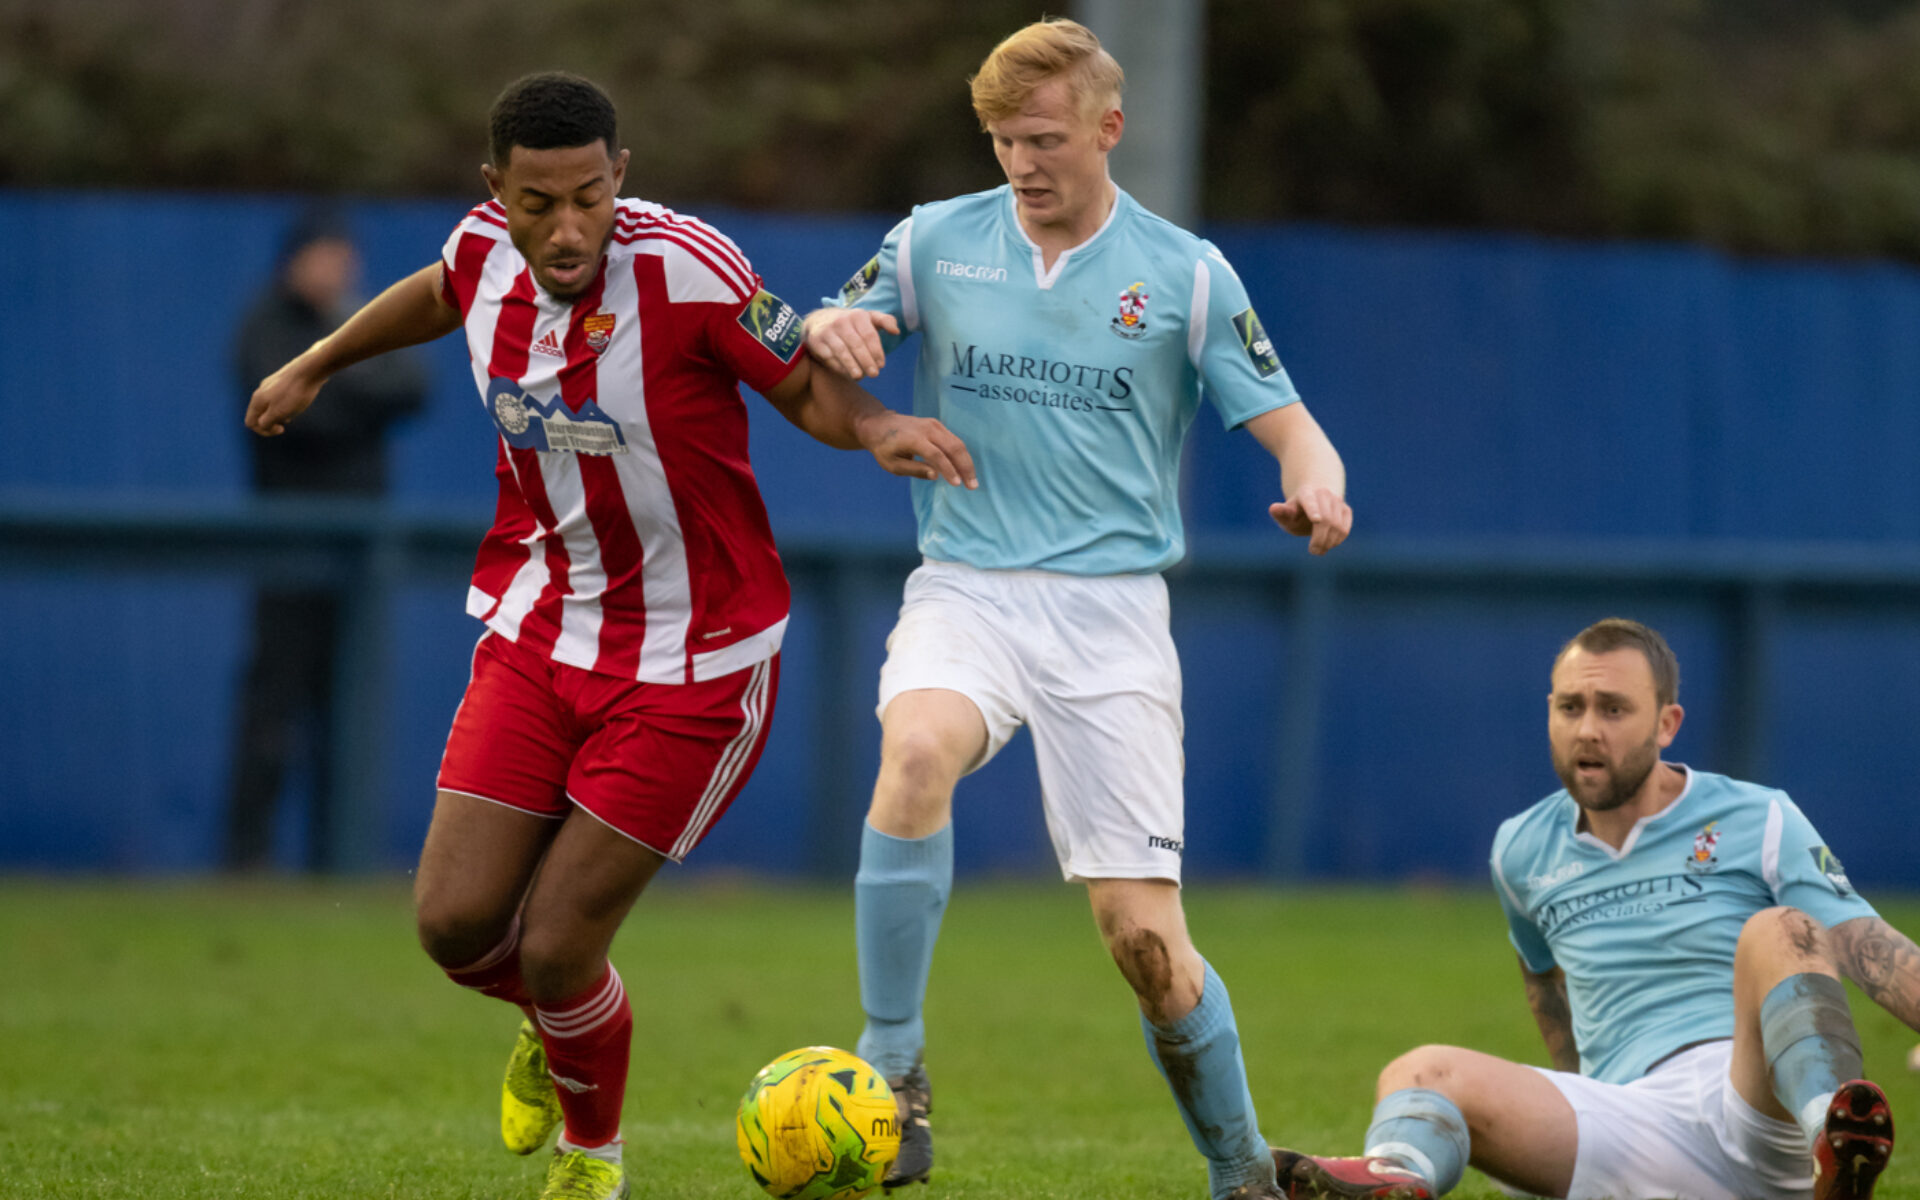 THREE LATE GOALS FOR BLUES IN WIN OVER FELIXSTOWE Featured Image